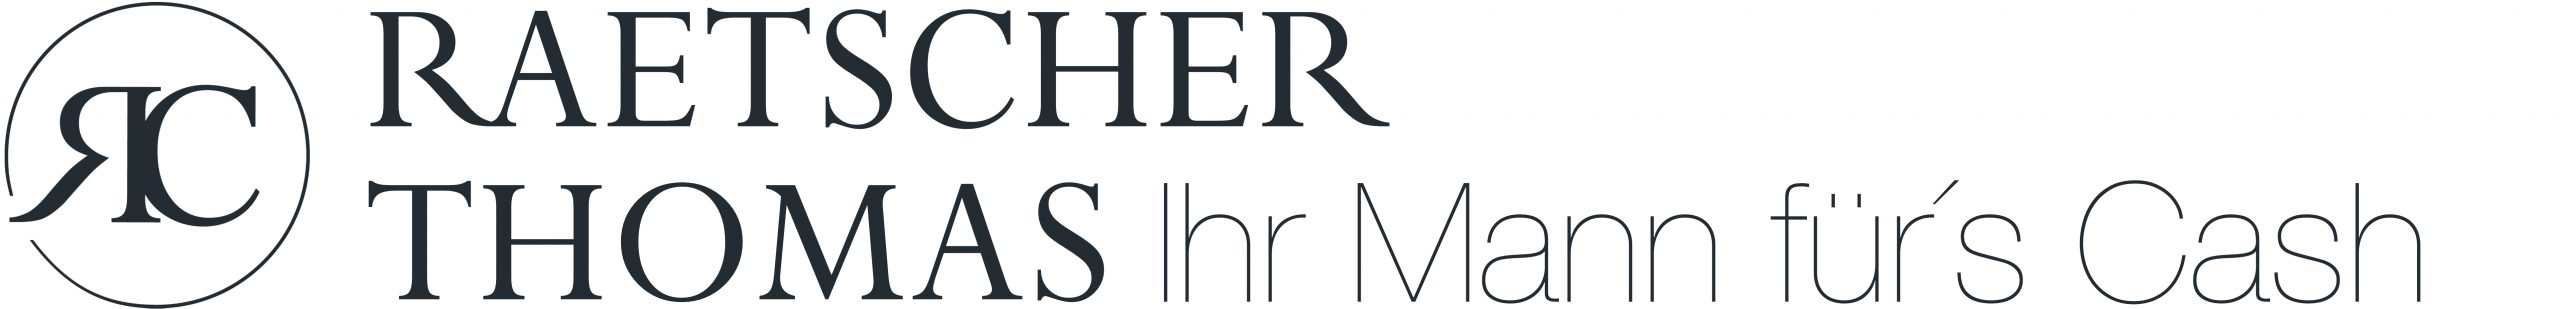 Raetscher Consulting | Rätscher Thomas - Ihr Mann fürs Cash | Interim Manager - Credit Manager - Consultant - Sparring Partner